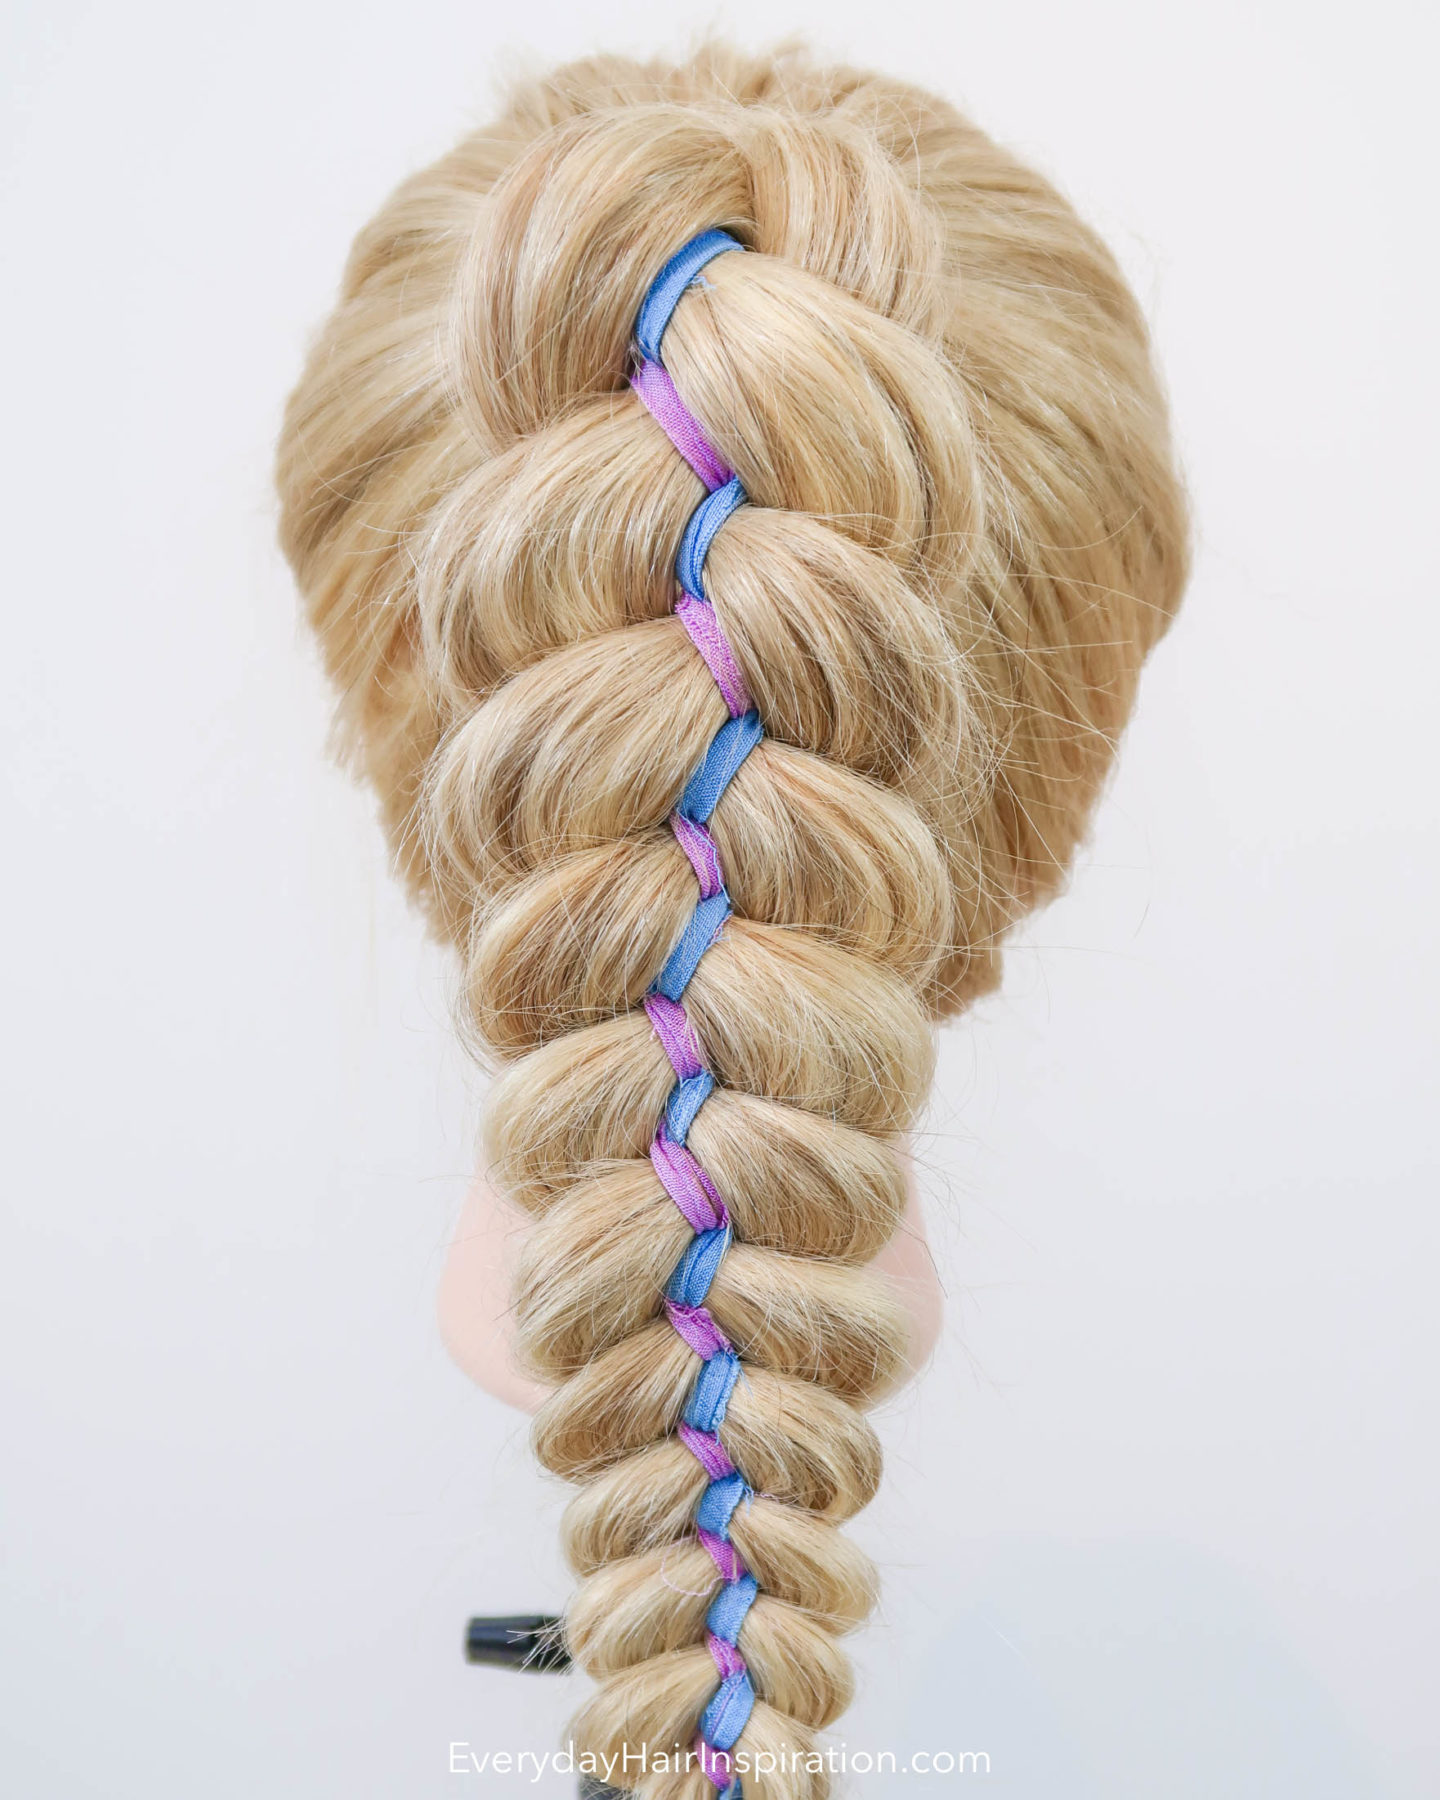 Close up of a blonde hairdresser doll with a high ponytail, in which there is a 5 strand ribbon braid, with purple and blue colored ribbon.